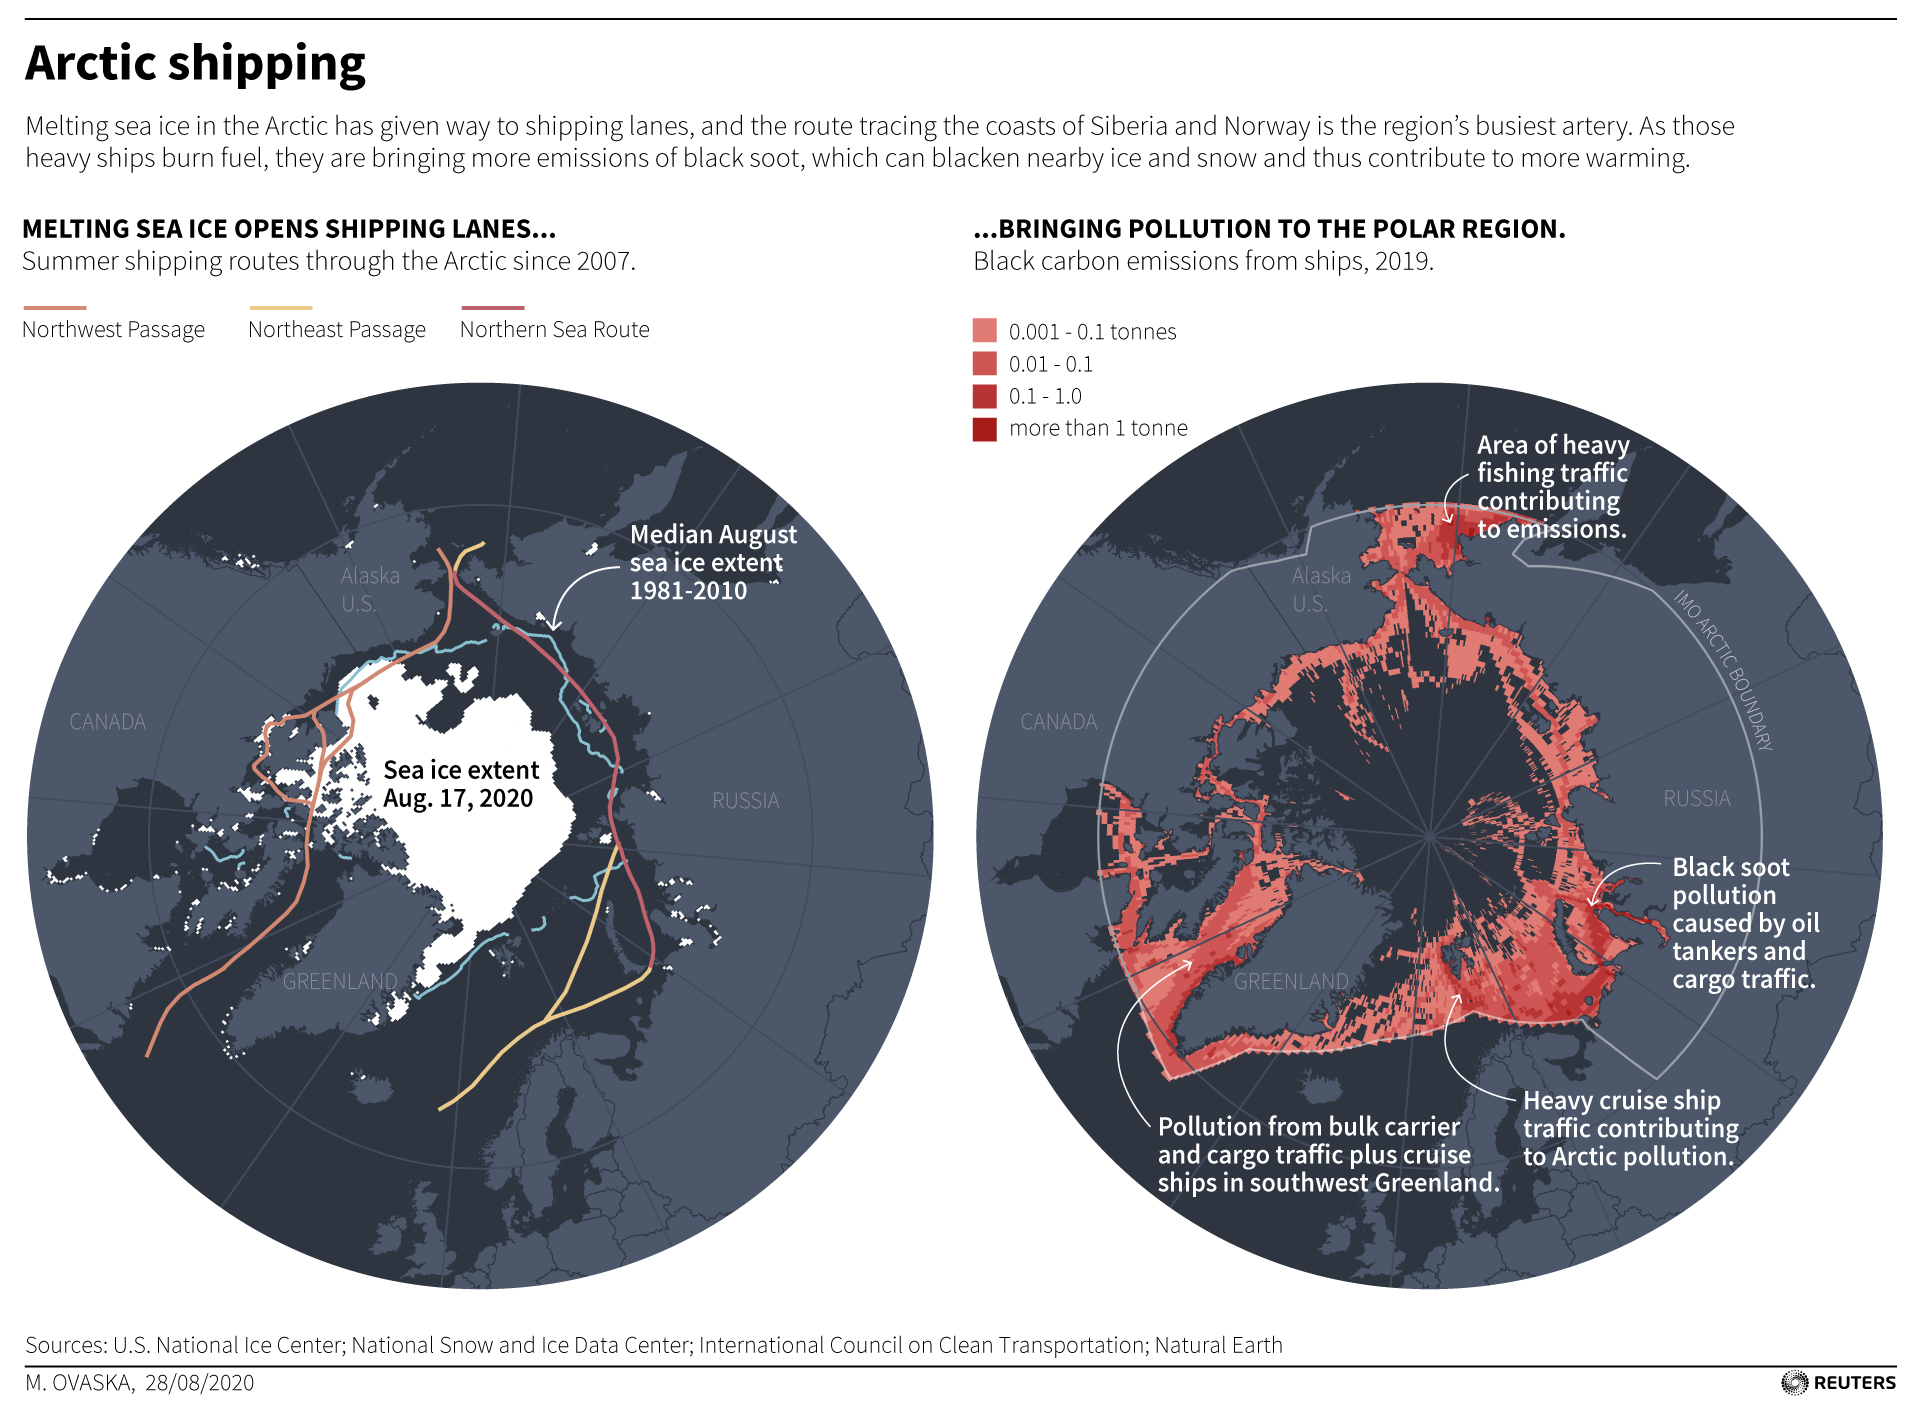 Arctic shipping lanes mapped with current sea ice extent, and the pollution caused by ship traffic in 2019